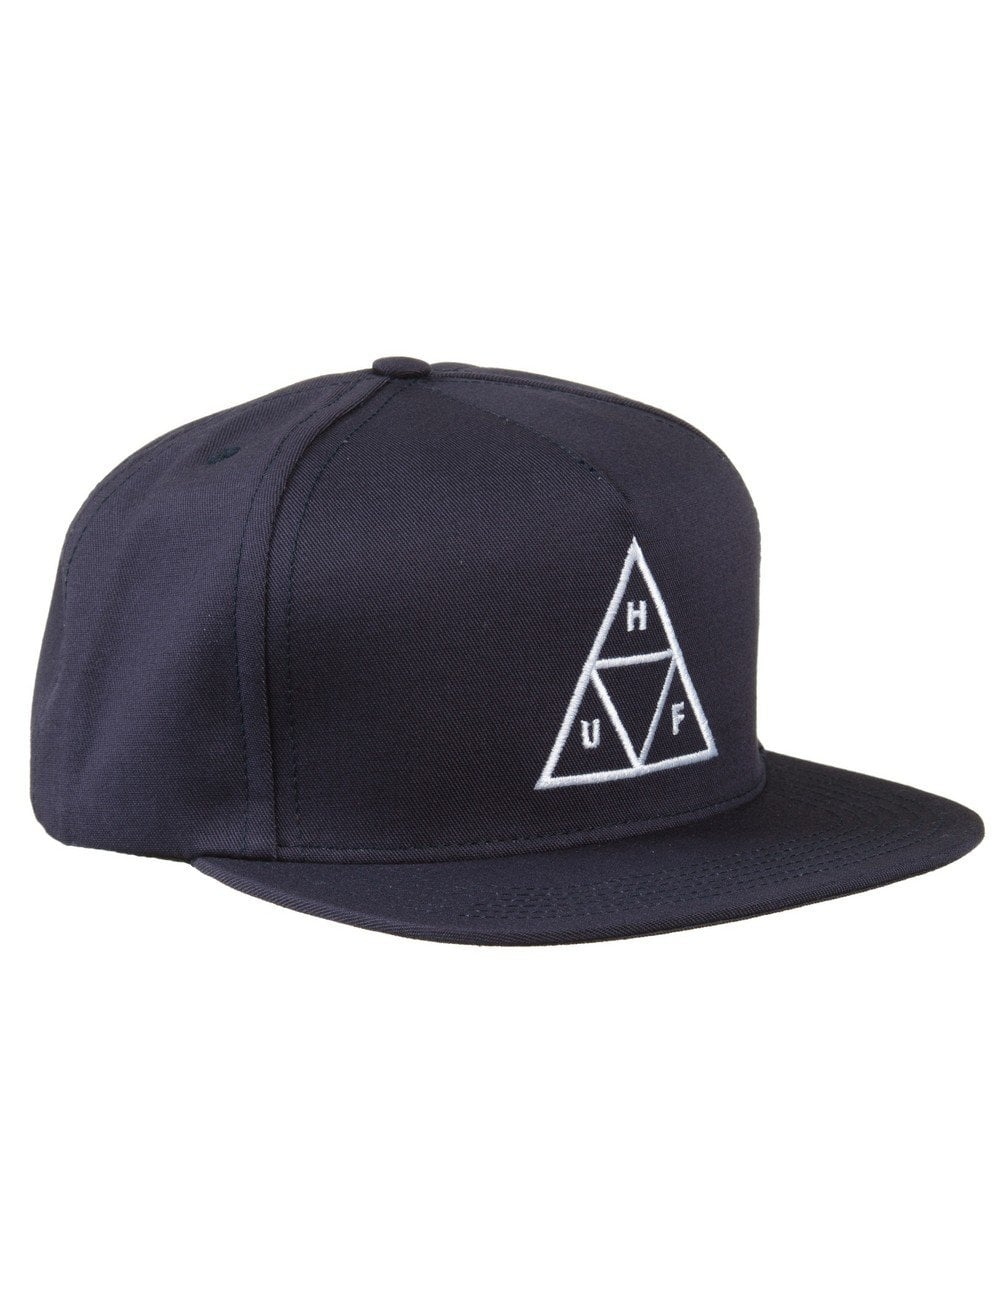 aab9a02113c Huf Triple Triangle Snapback Hat - Navy - Accessories from Fat ...